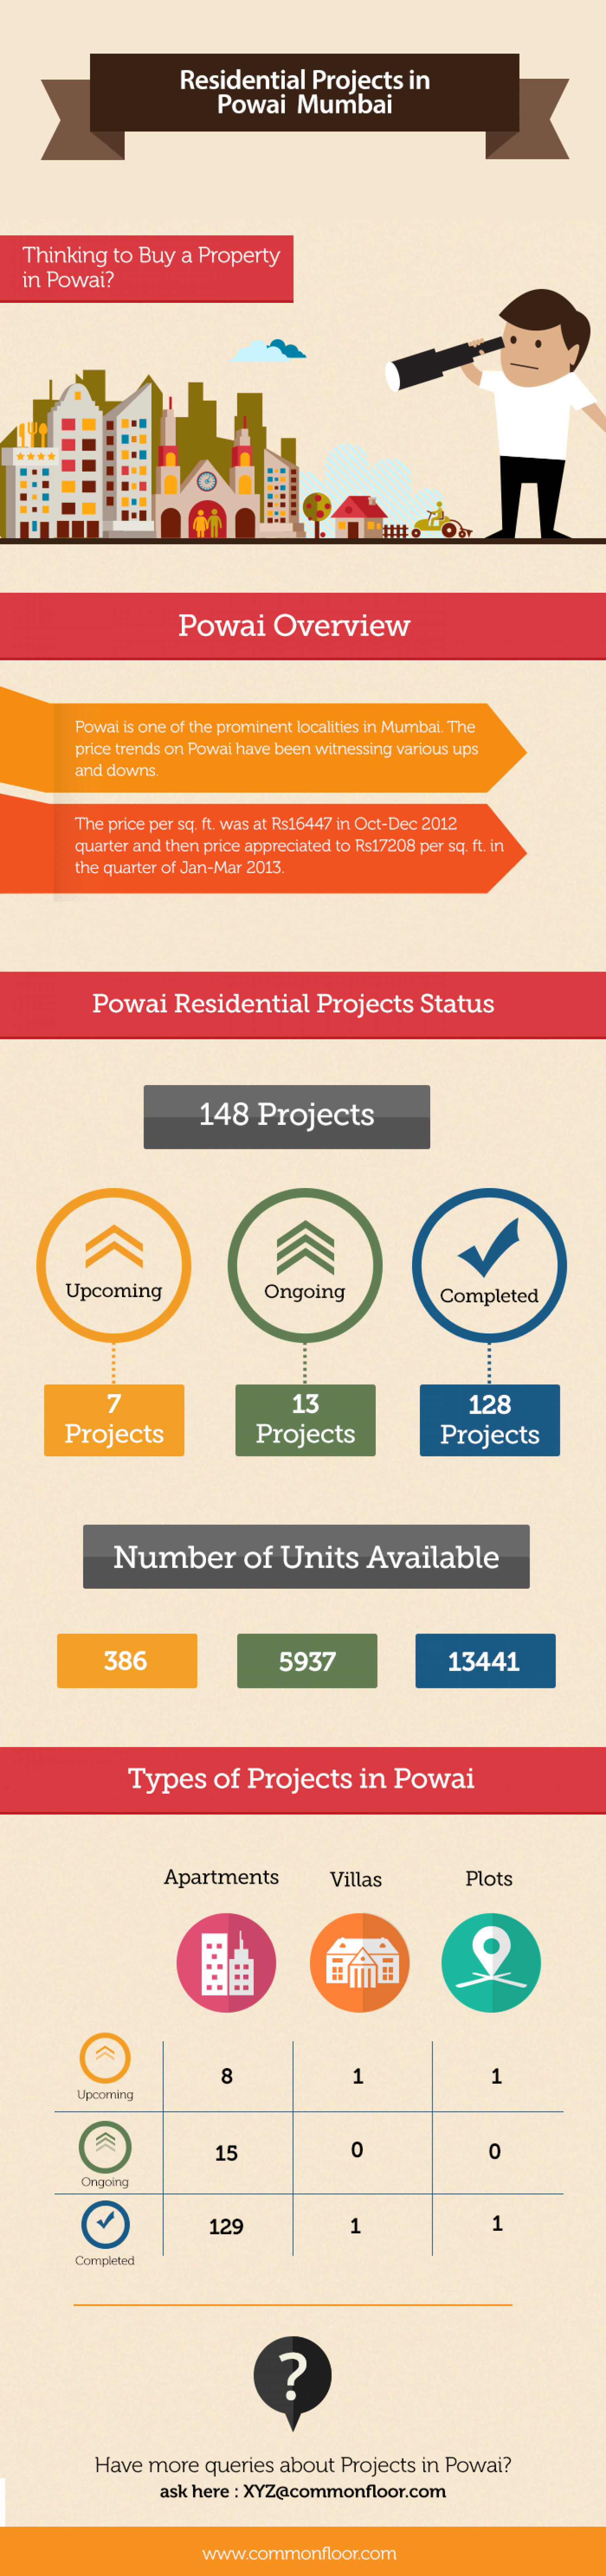 Residential Projects in Powai, Mumbai Infographic